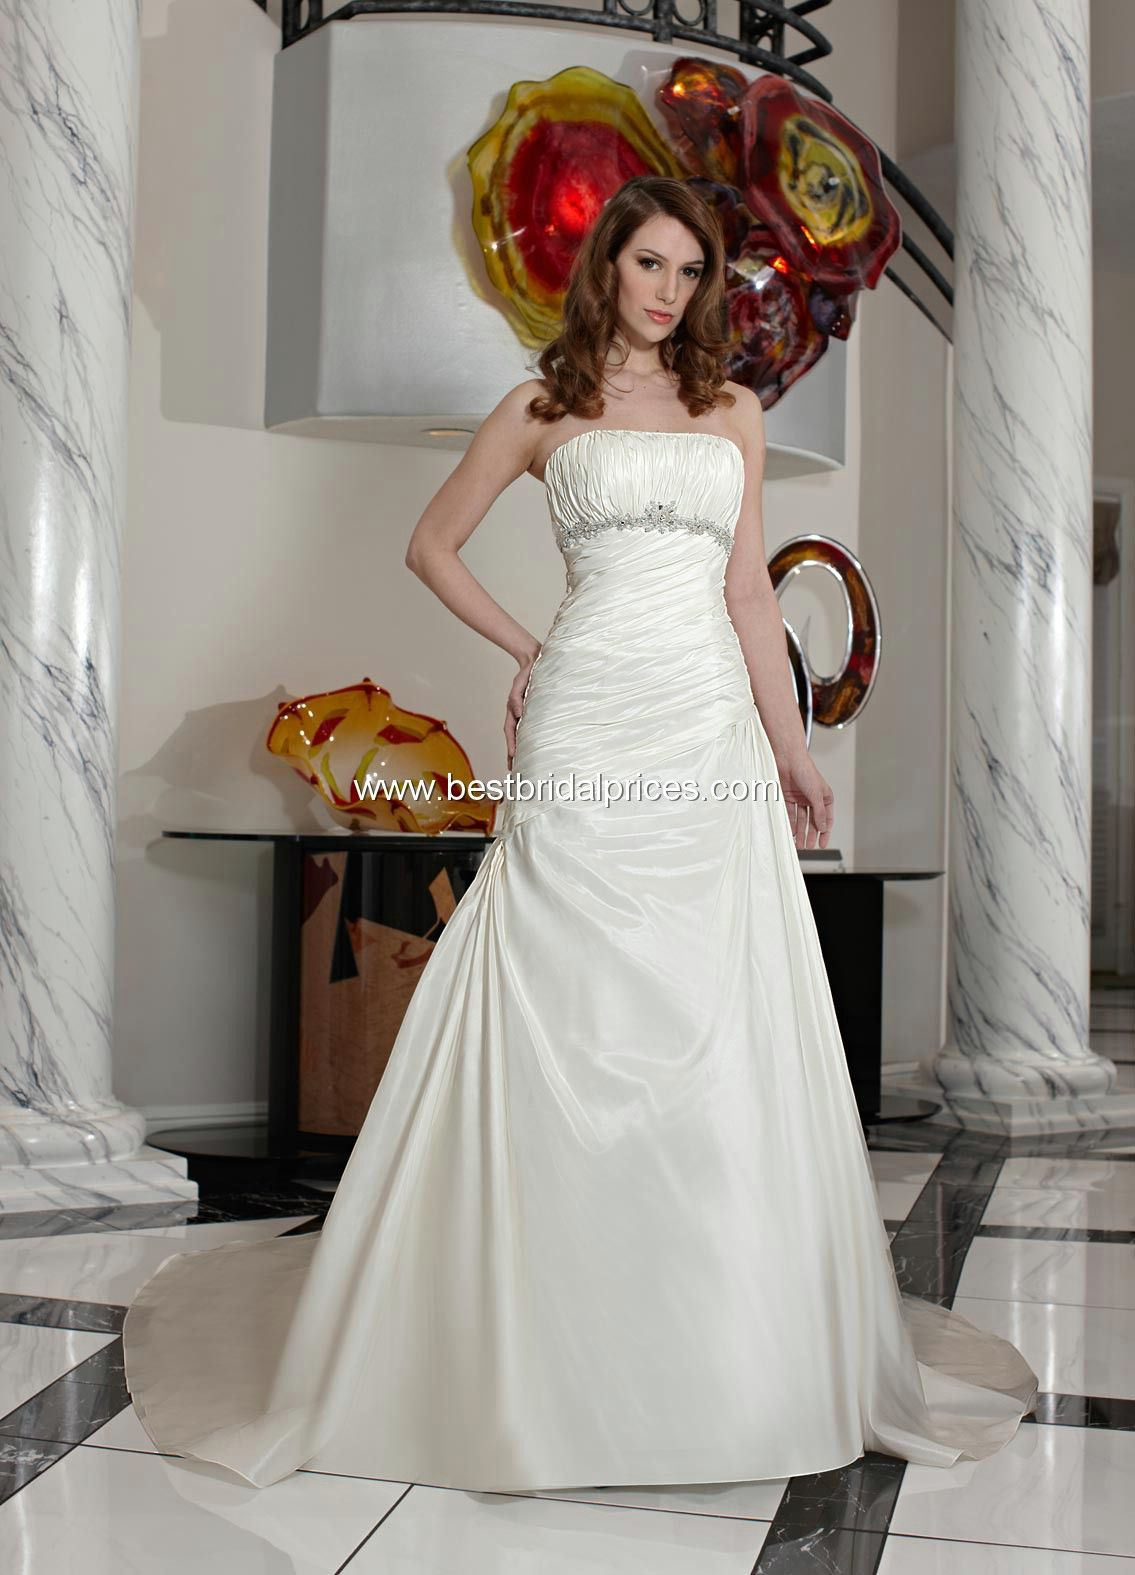 Style 8460 » Wedding Gowns » DaVinci Bridal » Available Colours : Ivory, White